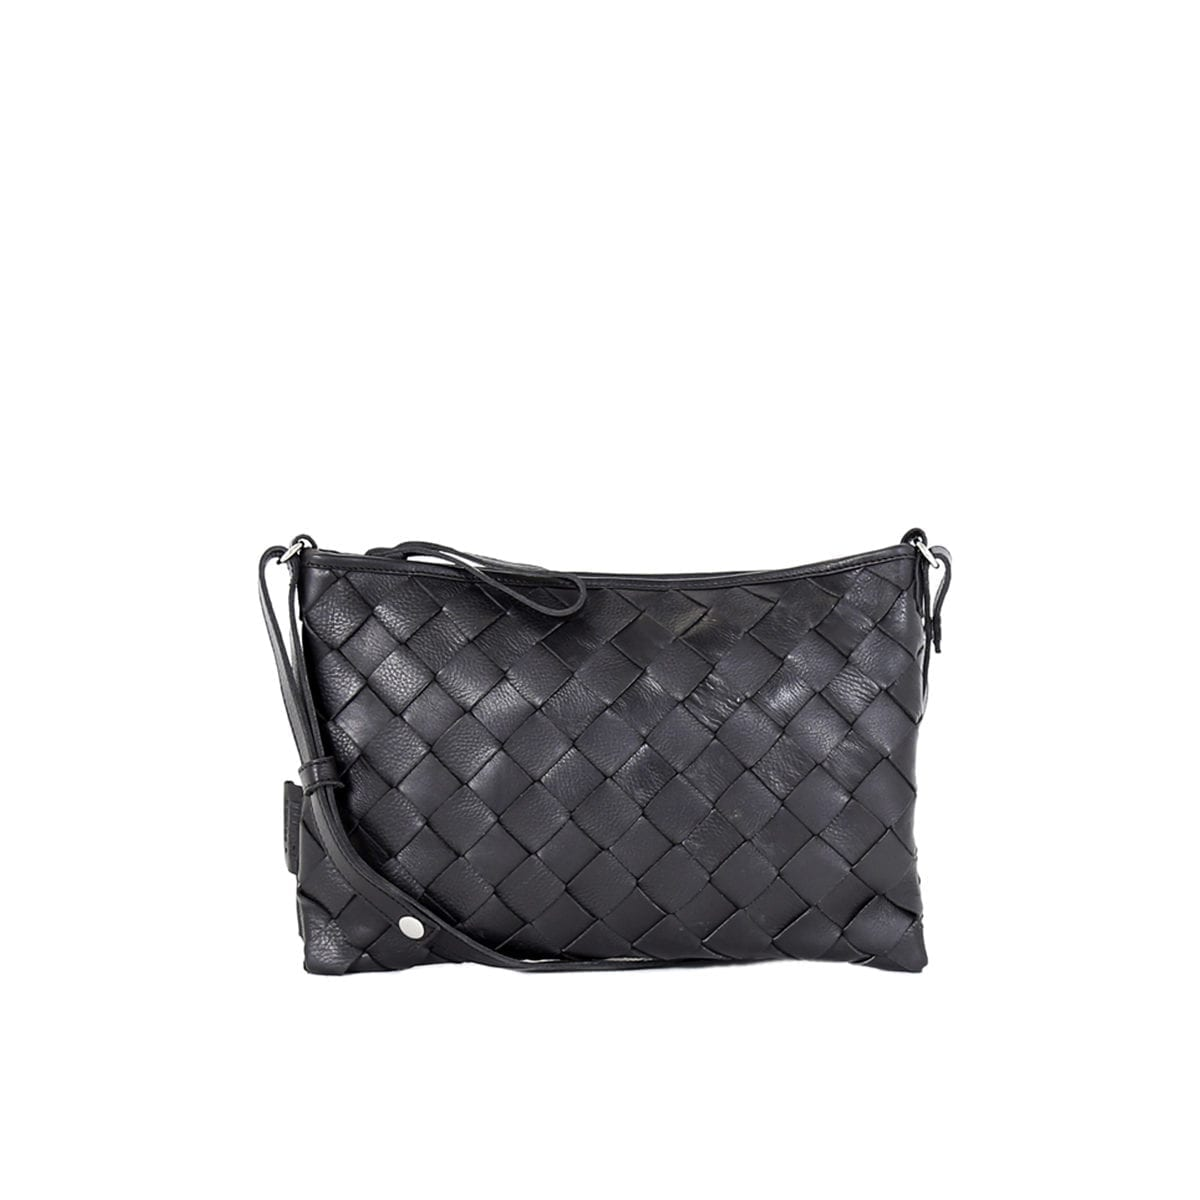 f778cc2a14 LUMI Trine Woven Clutch Large in classic black. This roomy clutch with  woven textured details